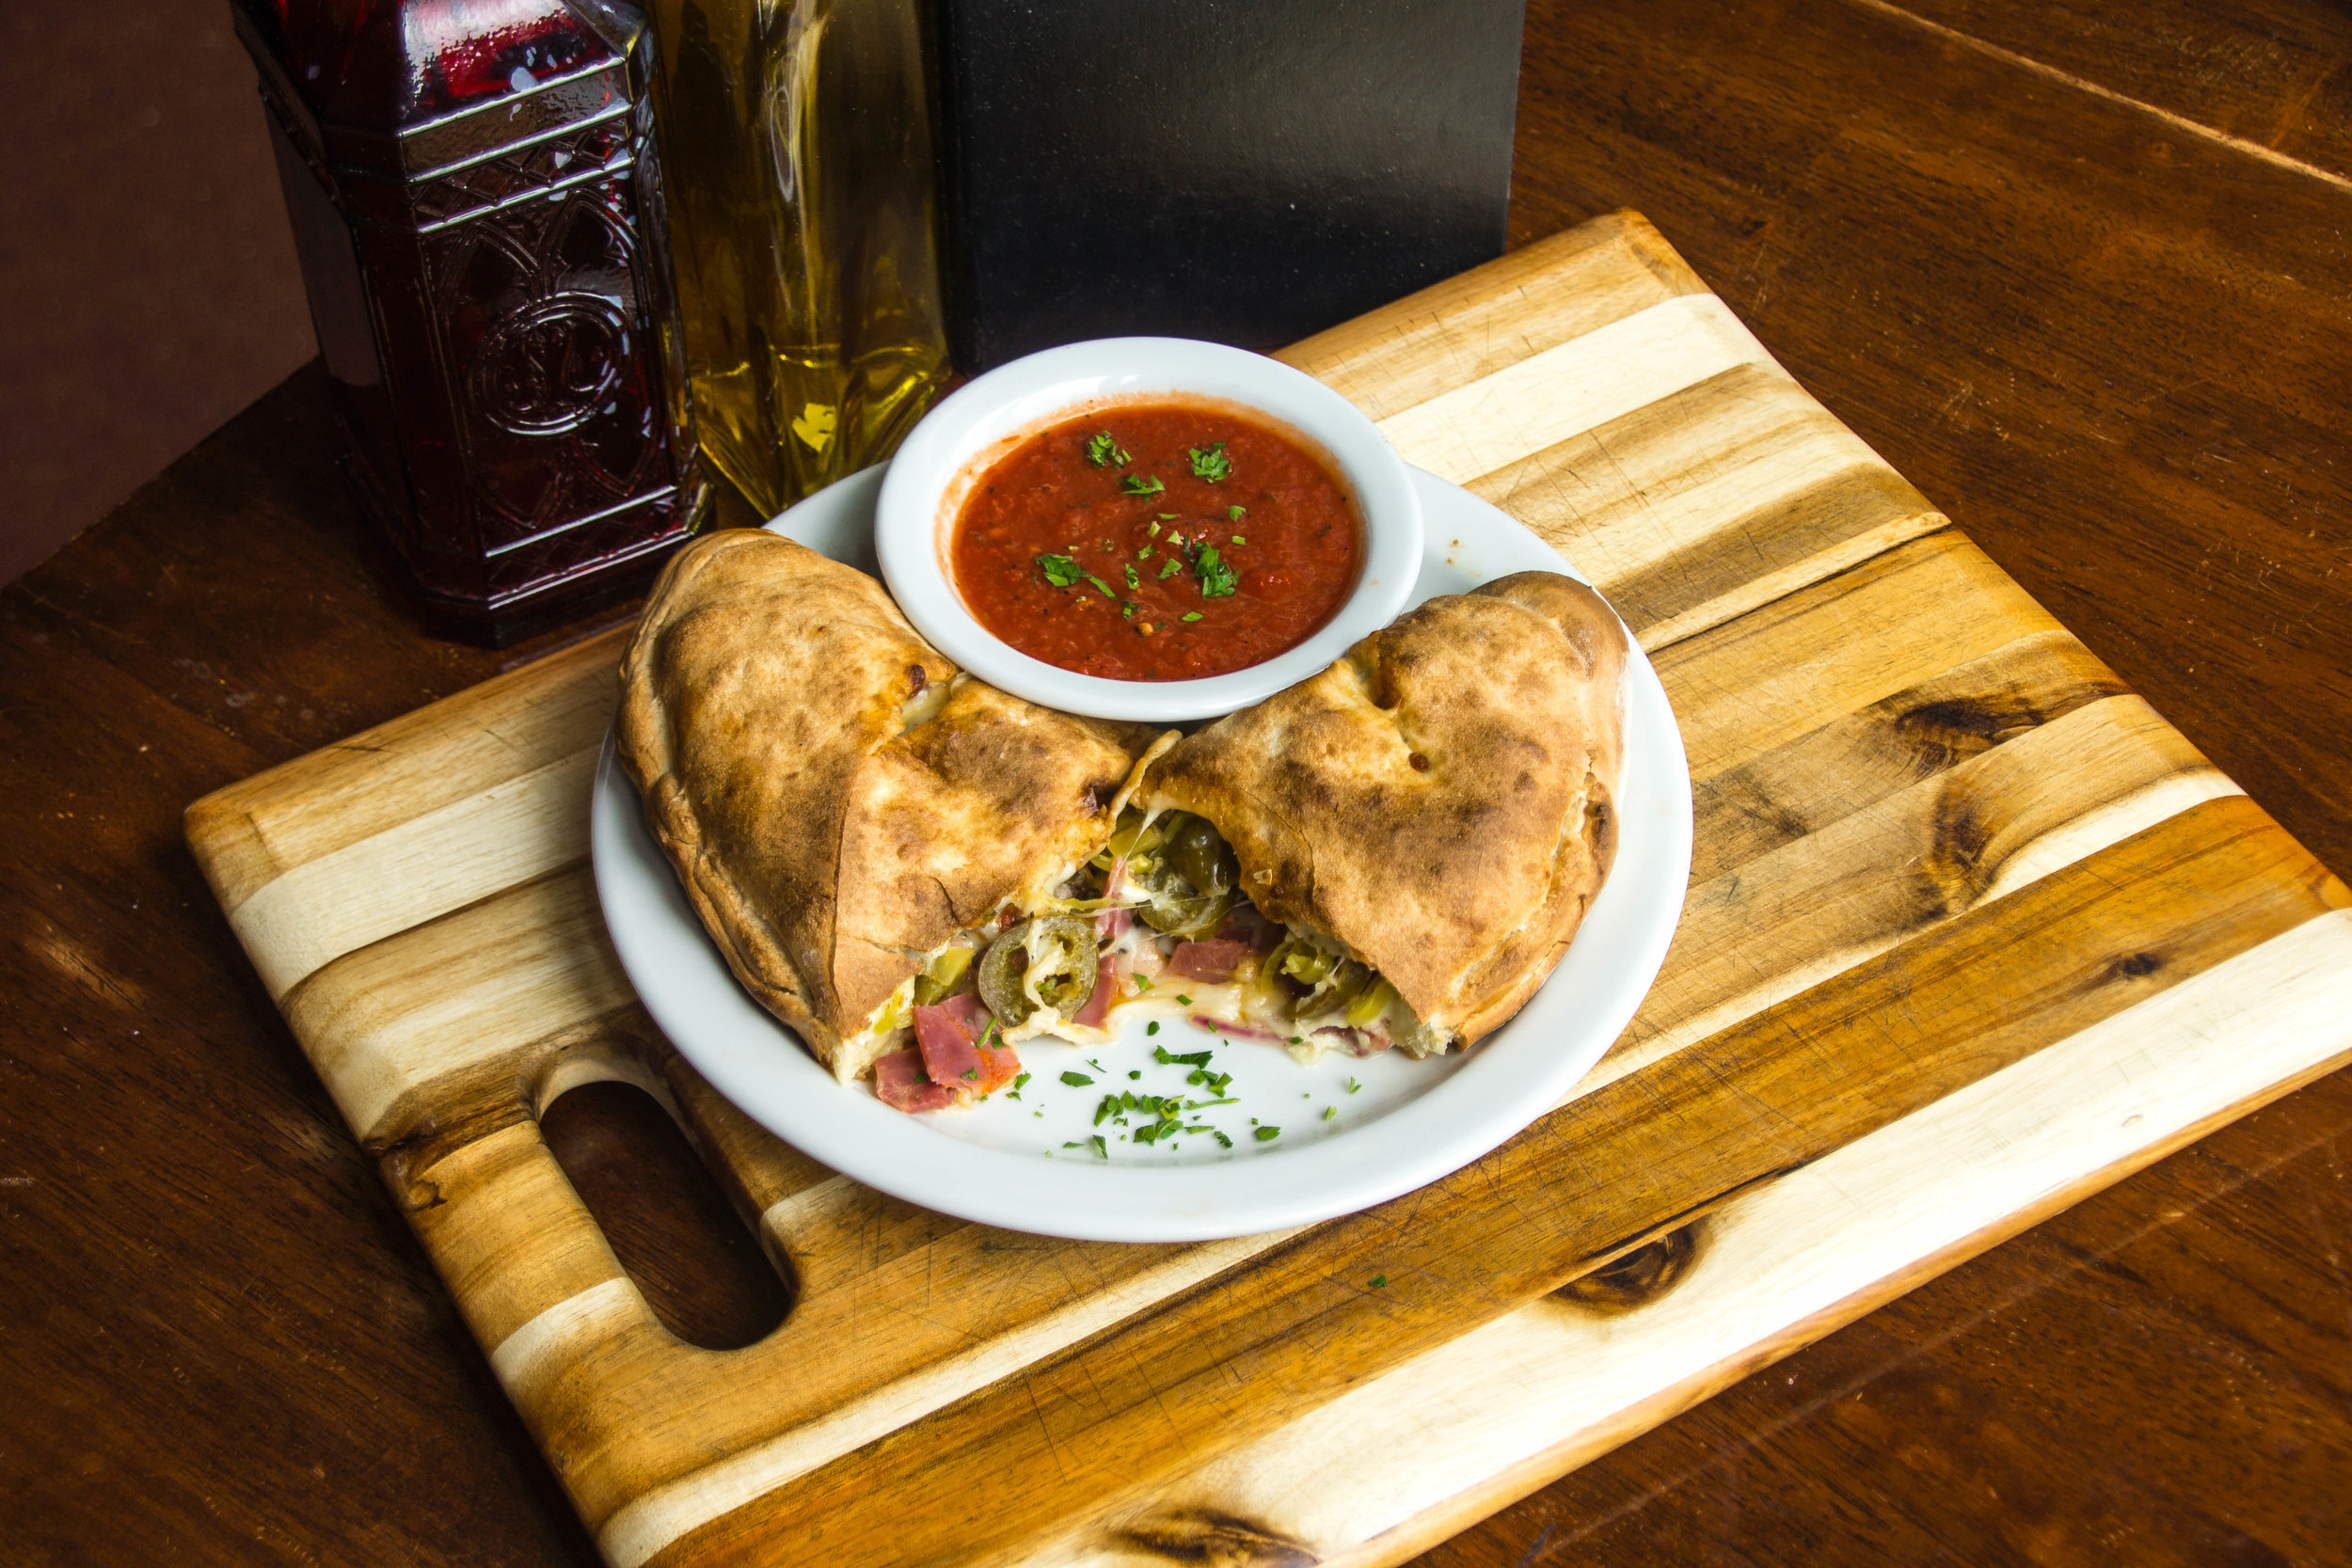 Hot N' Spicy Calzone